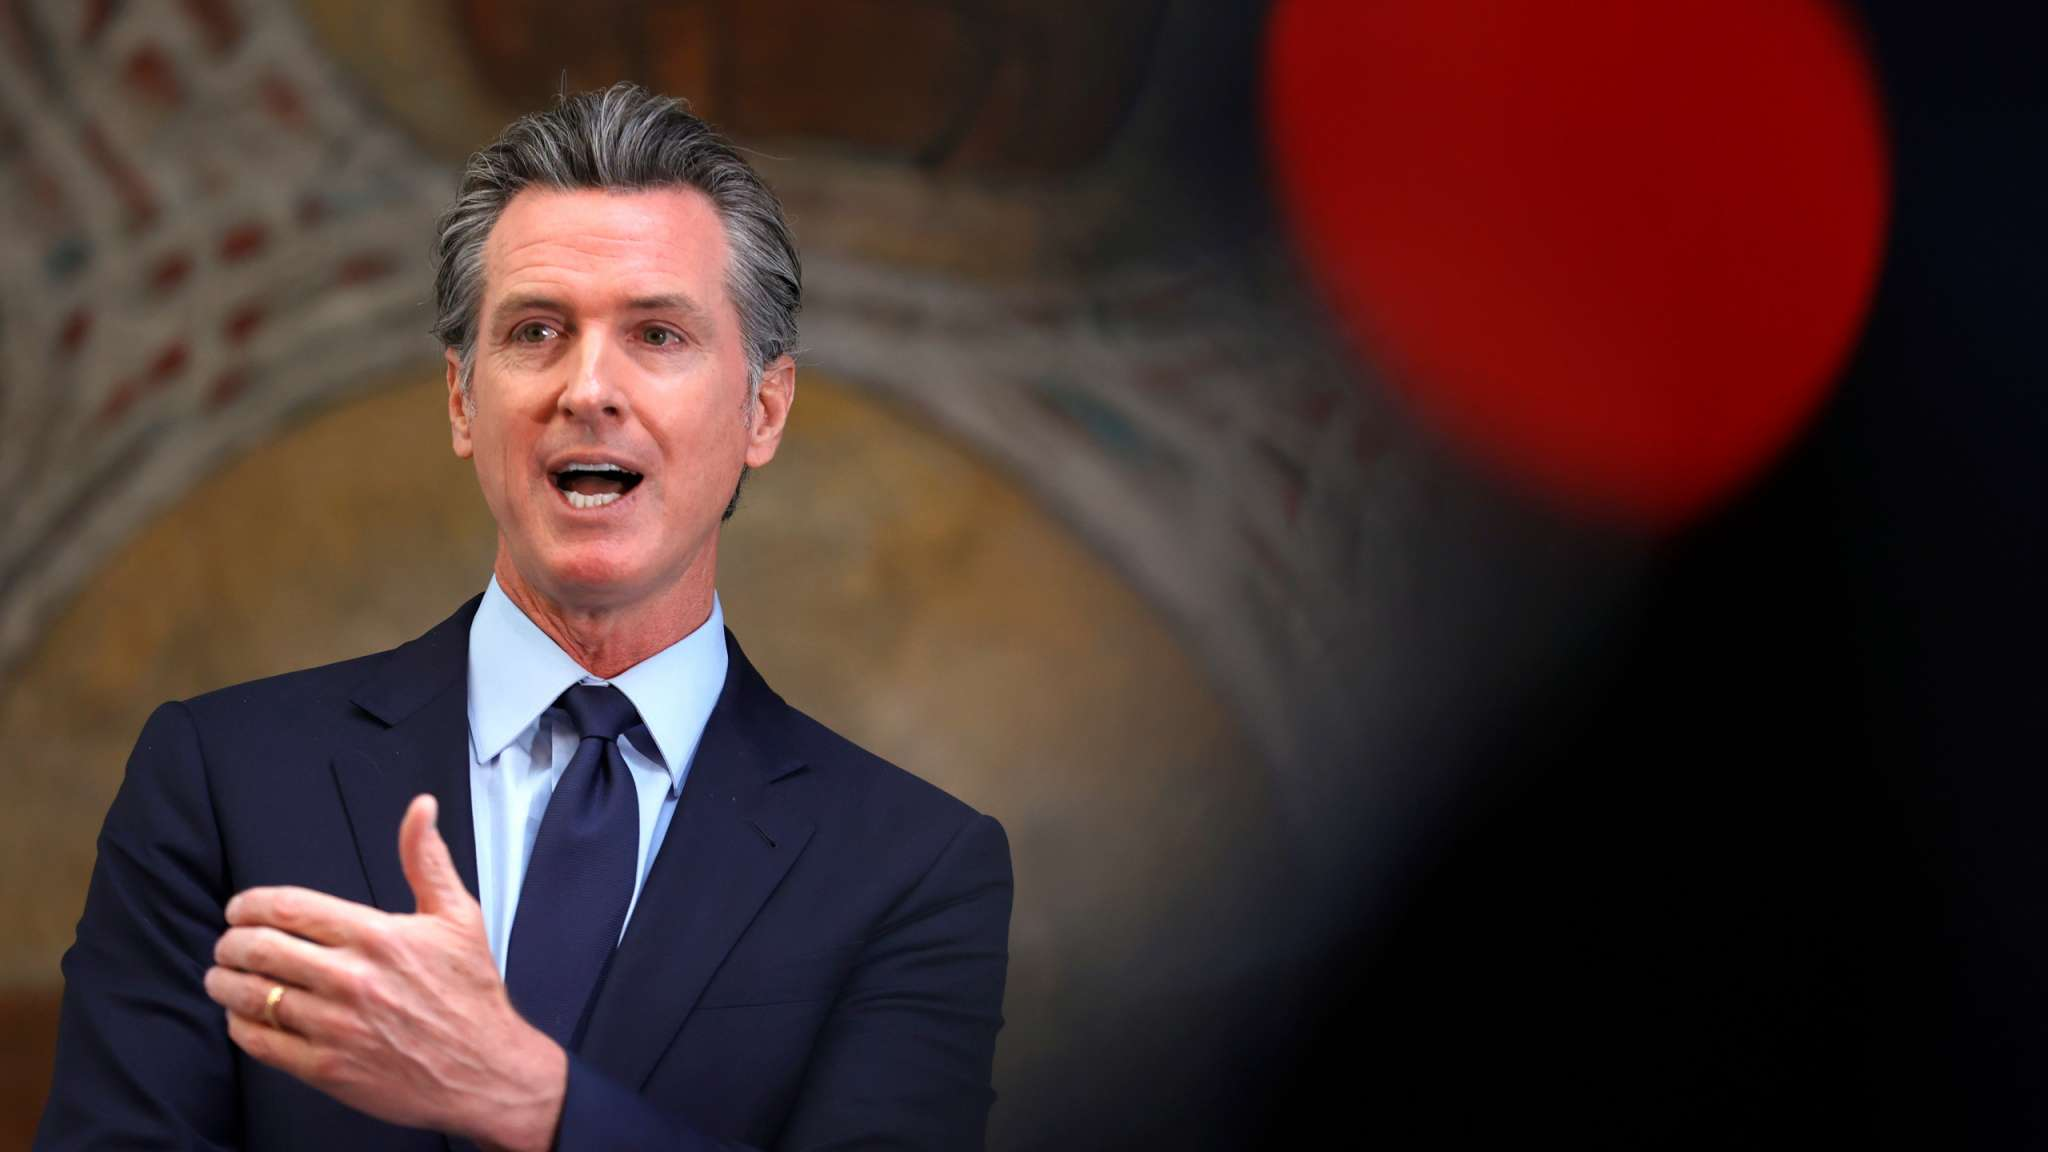 democratic-governor-gavin-newsom-california-establishes-a-force-to-study-and-calculate-slavery-reparations-for-the-black-community